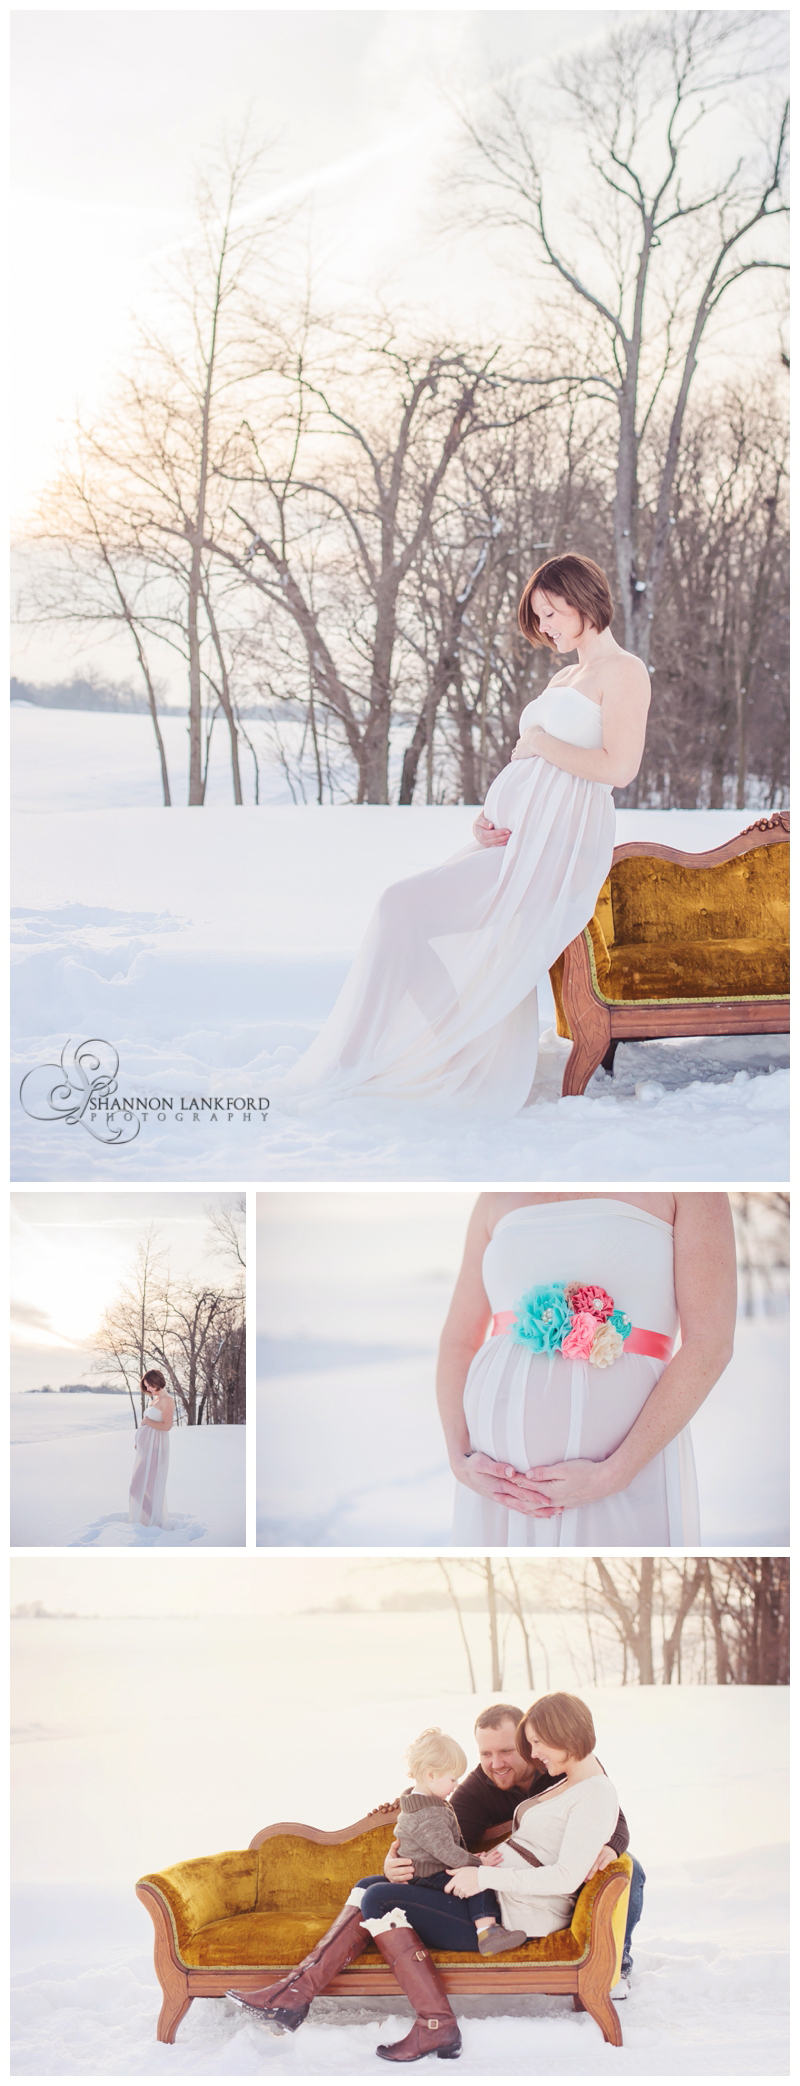 Outdoor Snow Maternity Portraits Shannon Lankford Photography White Gown